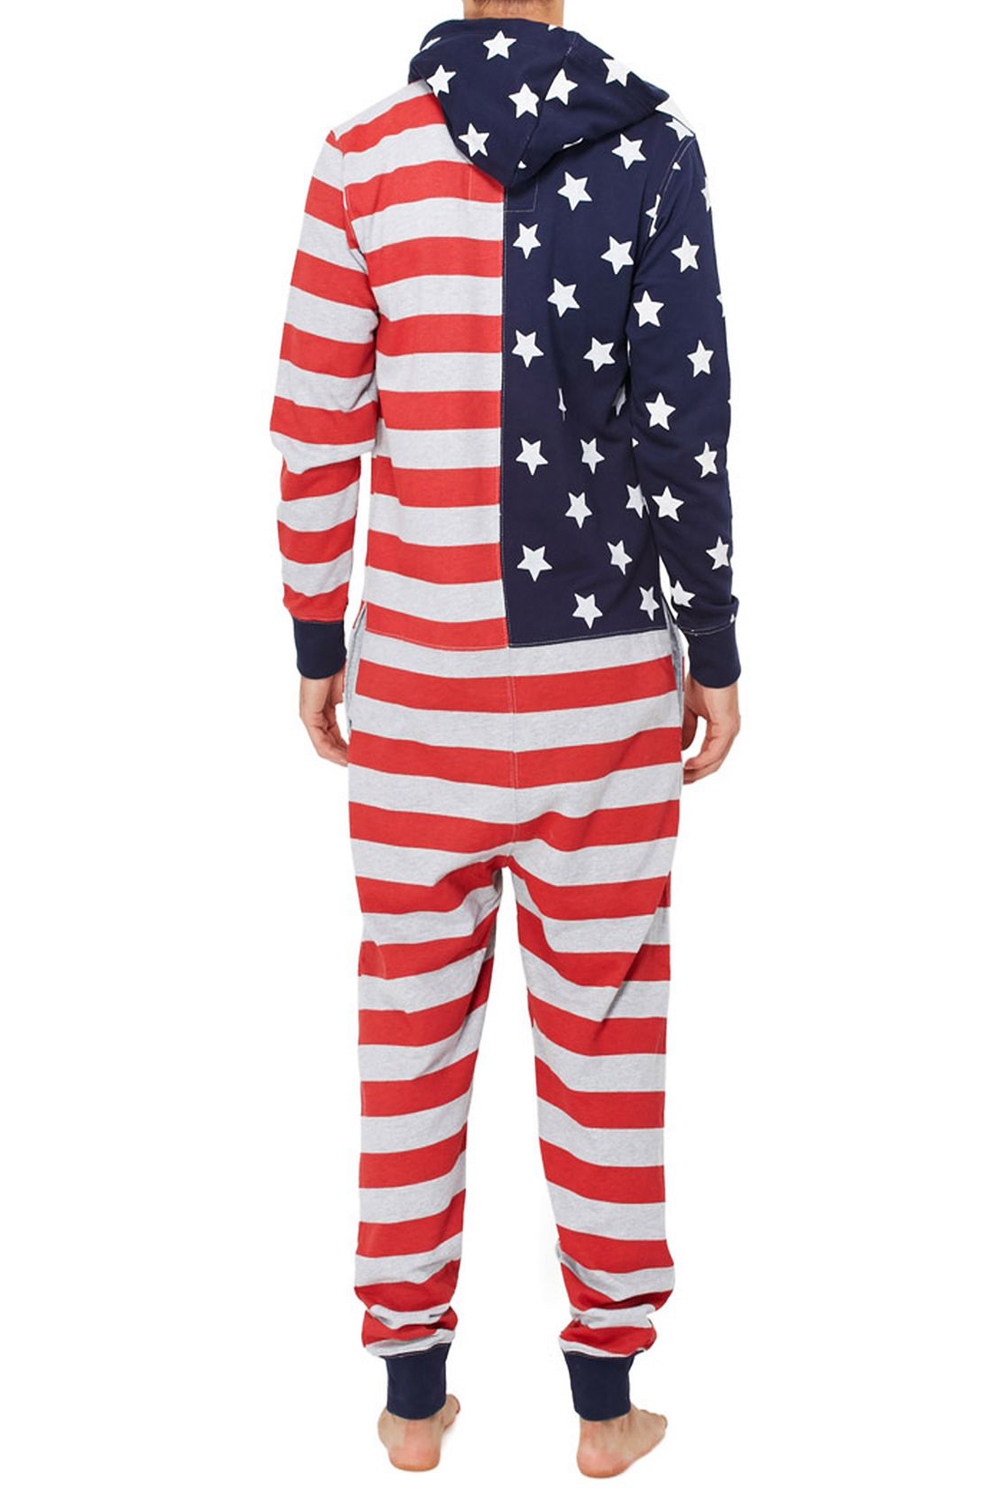 Tokyo-Laundry-Adults-All-In-One-American-USA-Flag-Print-Hooded-Lounge-Jumpsuit thumbnail 5